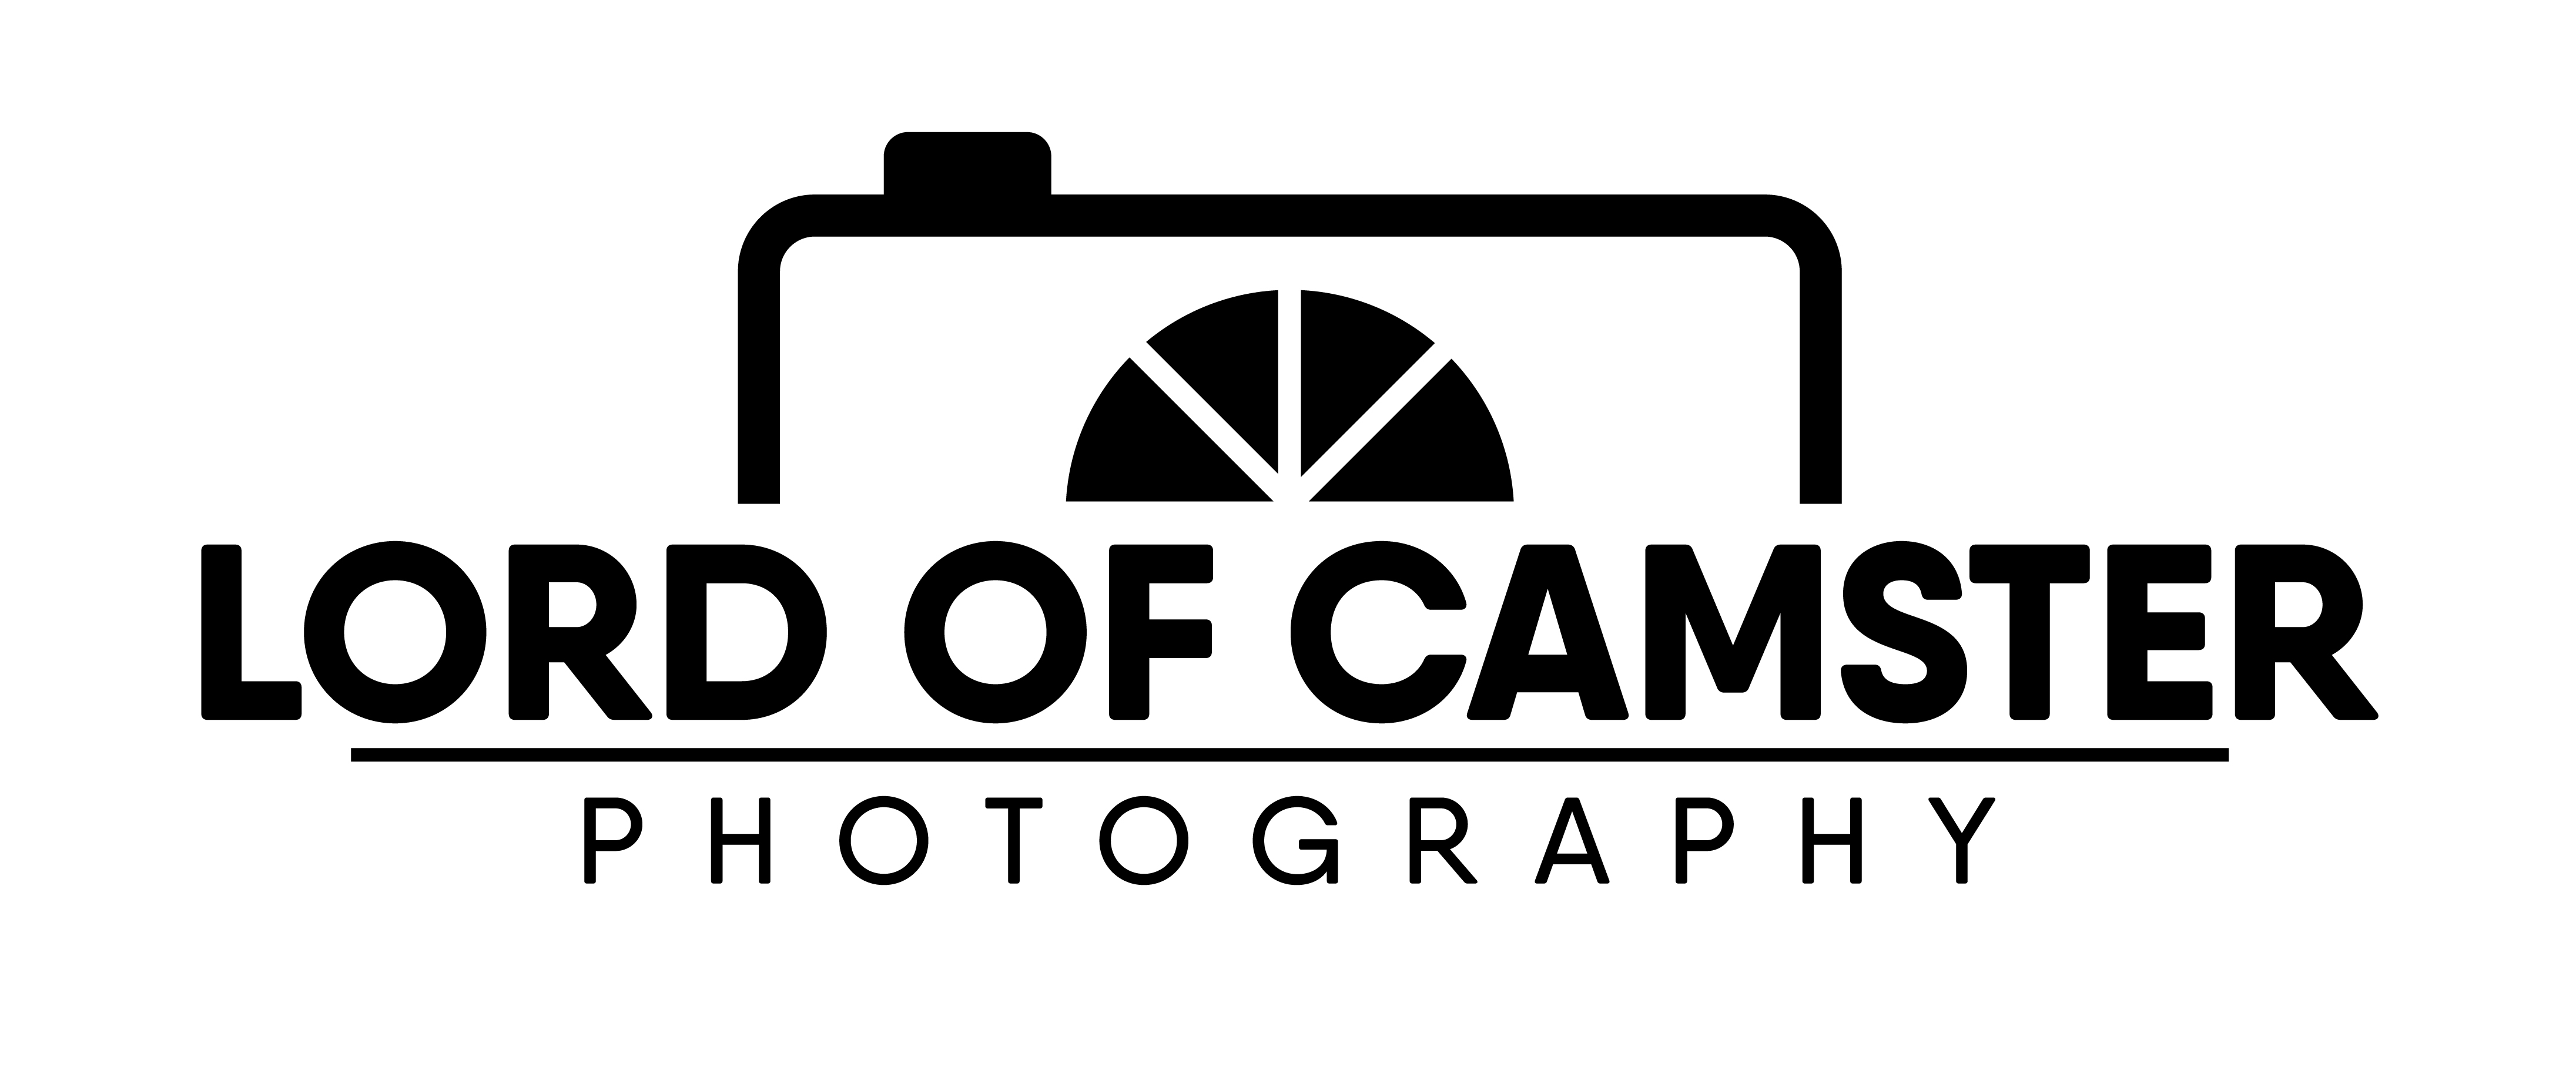 Lord of Camster photography Dennis Raphael